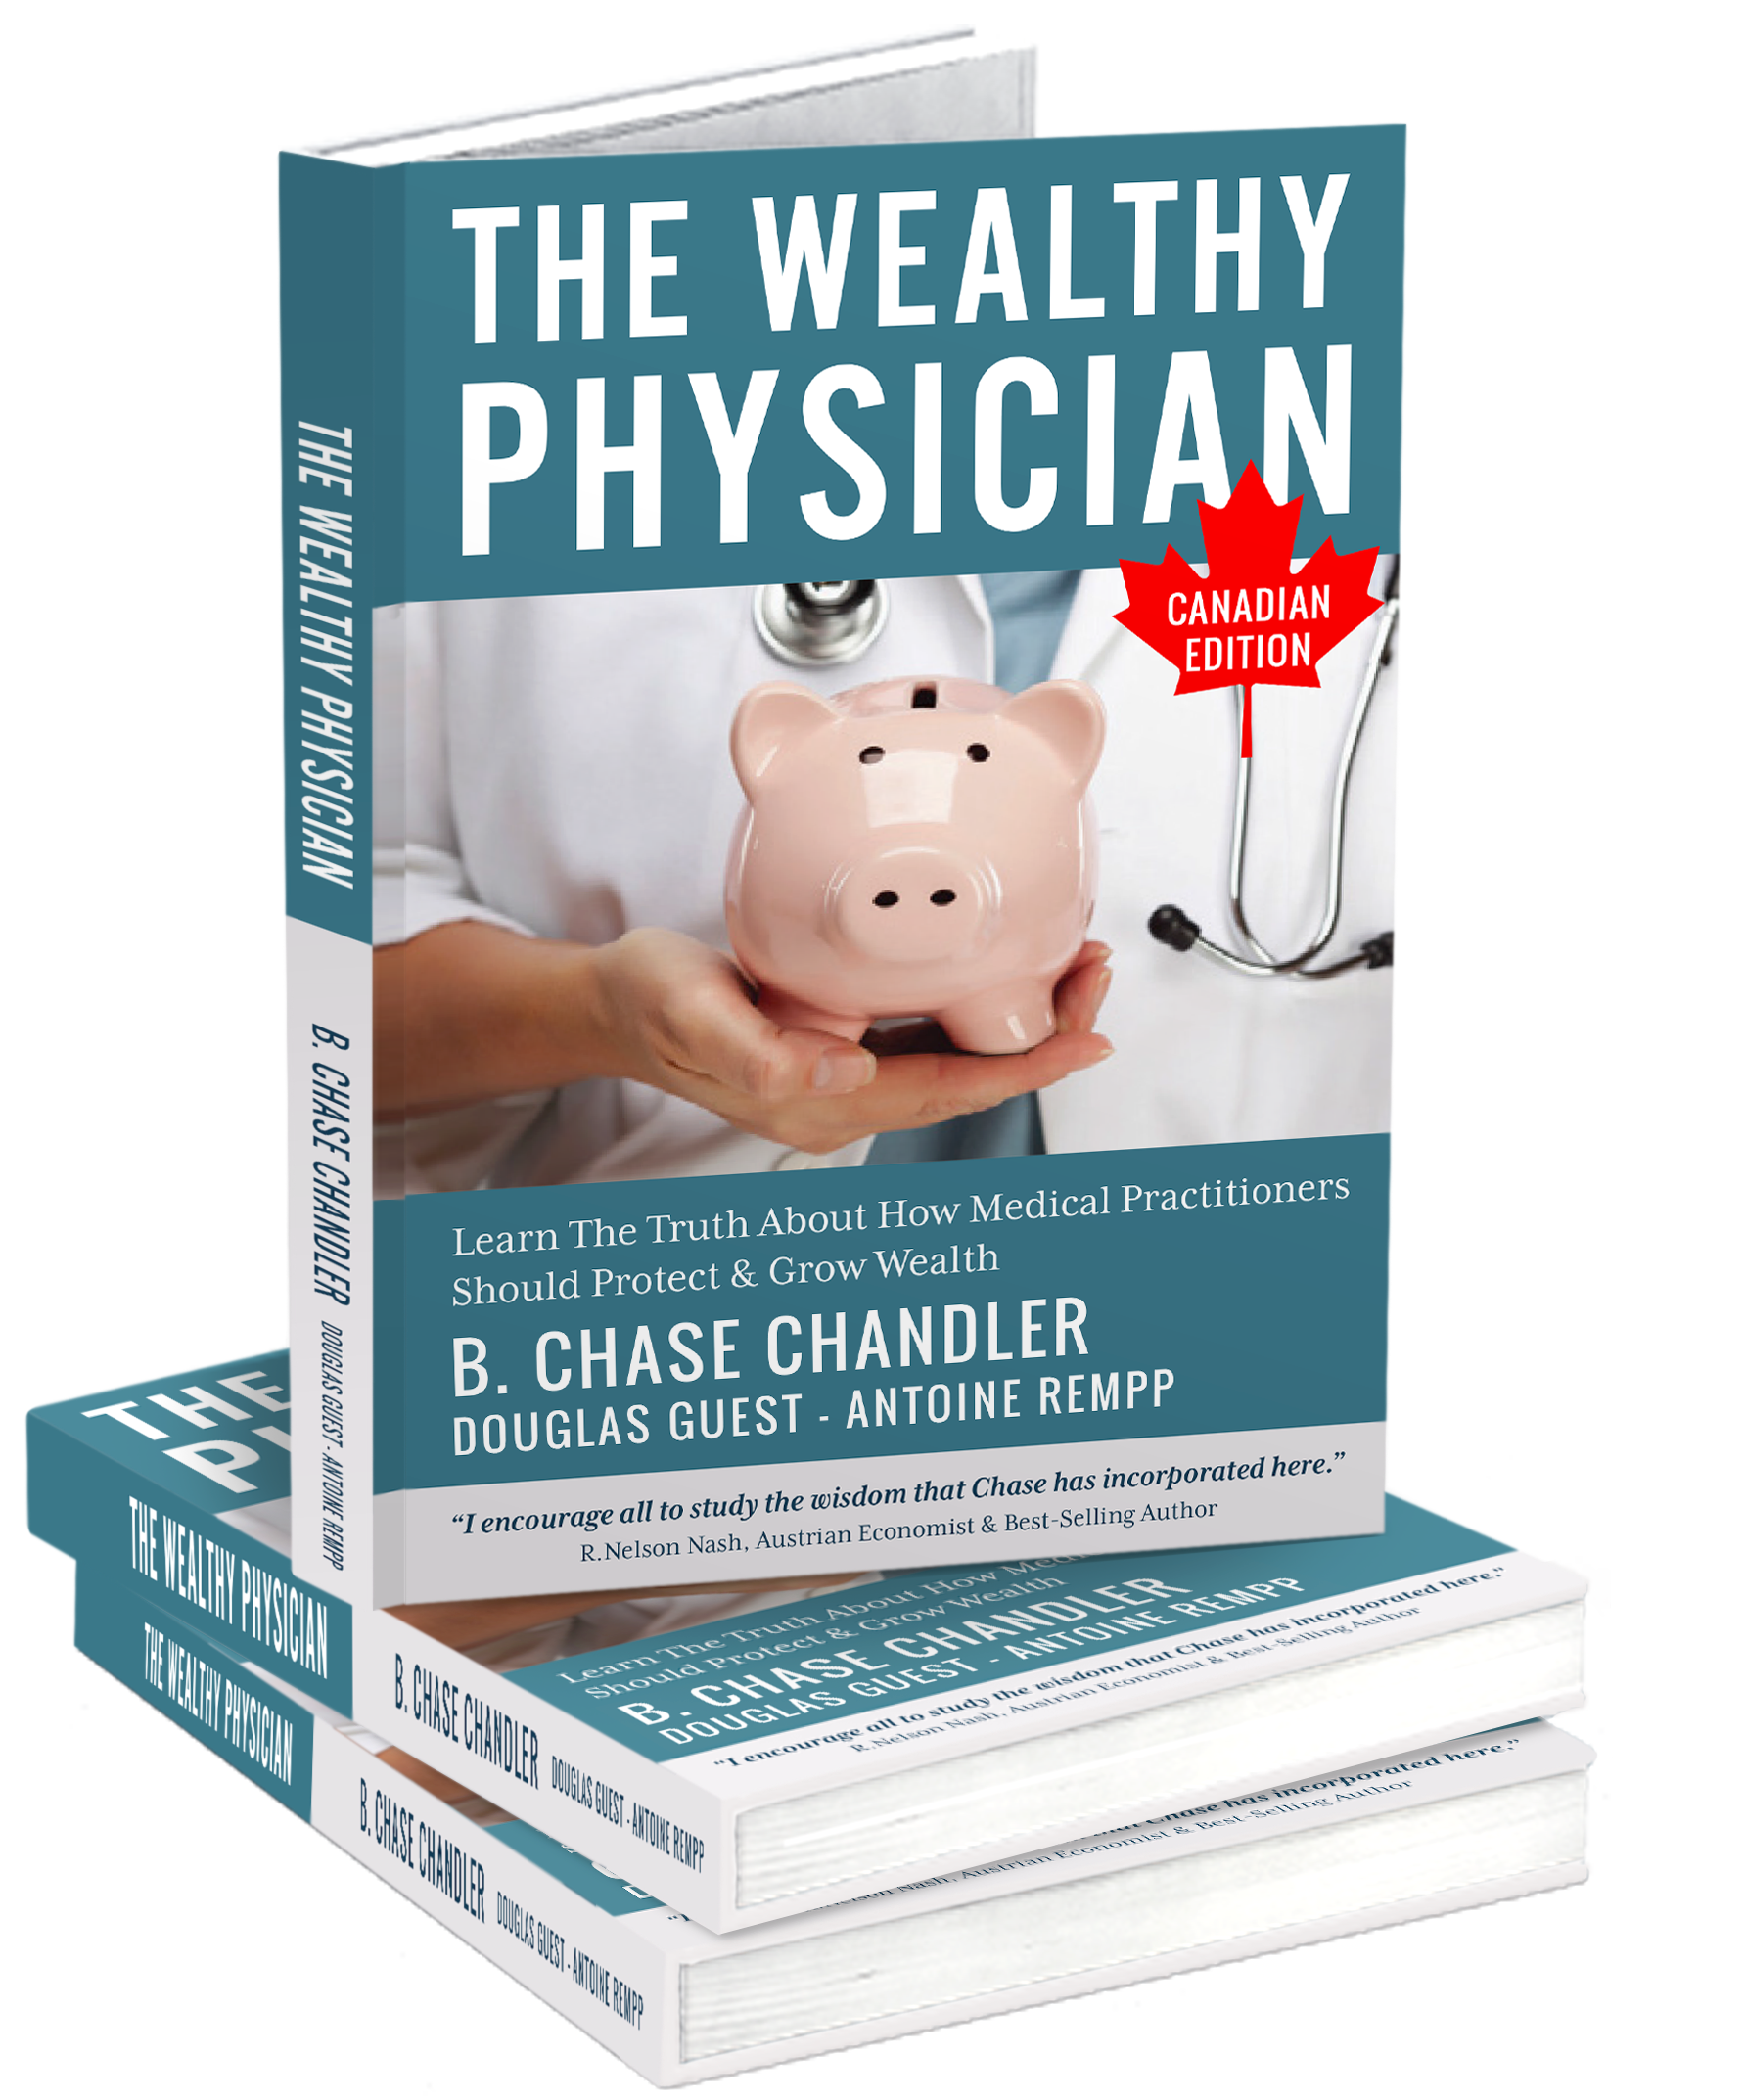 The Wealthy Physician